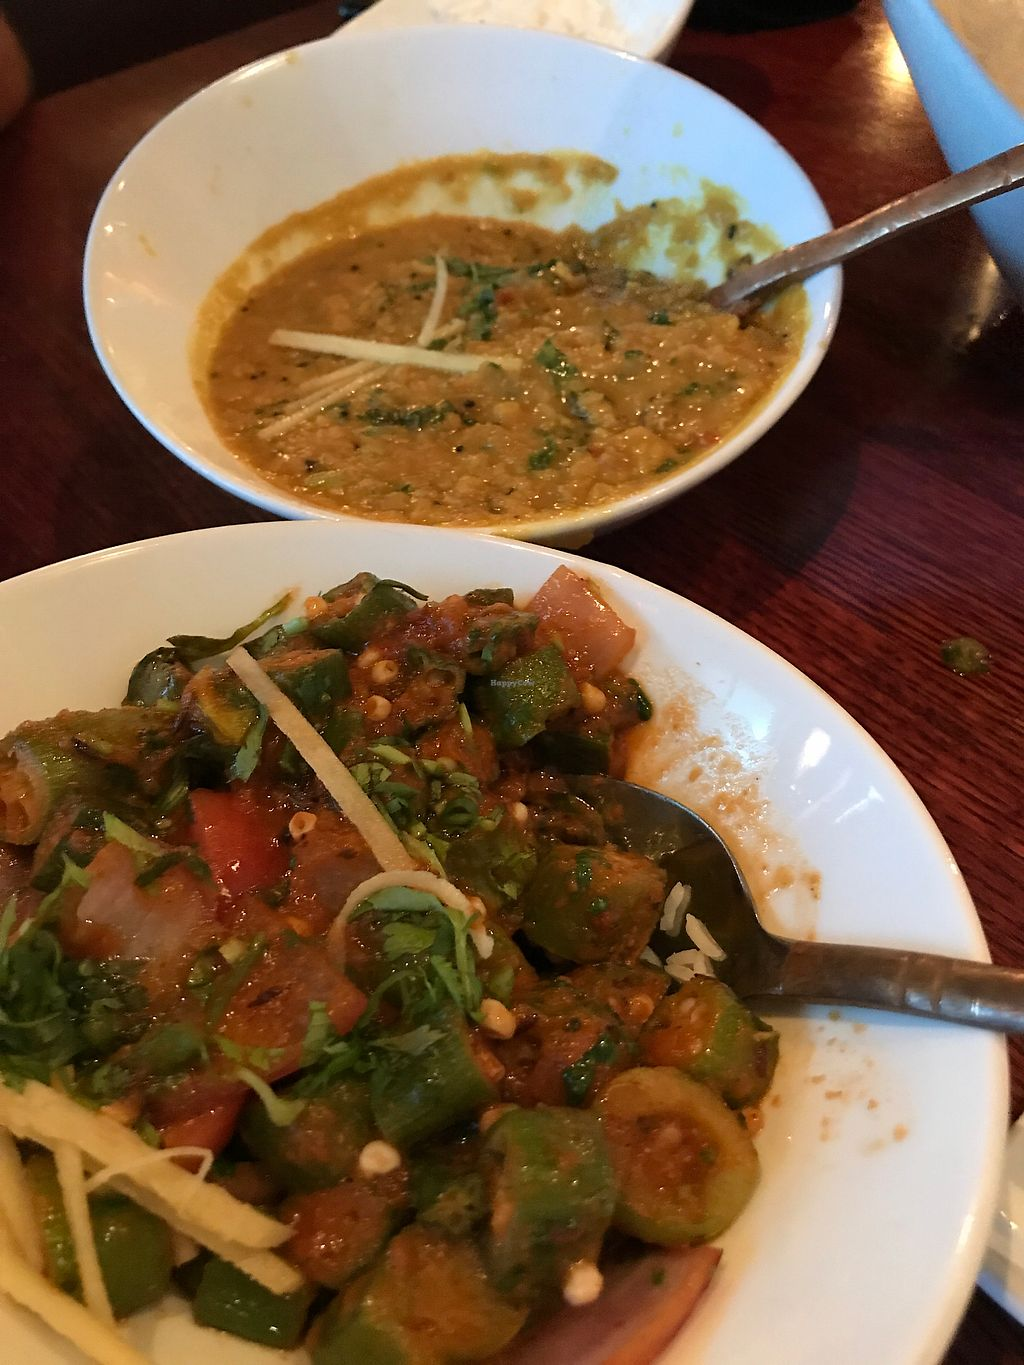 """Photo of Monsoon Indian Grill  by <a href=""""/members/profile/Labylala"""">Labylala</a> <br/>okra dish and yellow dahl <br/> July 9, 2017  - <a href='/contact/abuse/image/72664/278048'>Report</a>"""